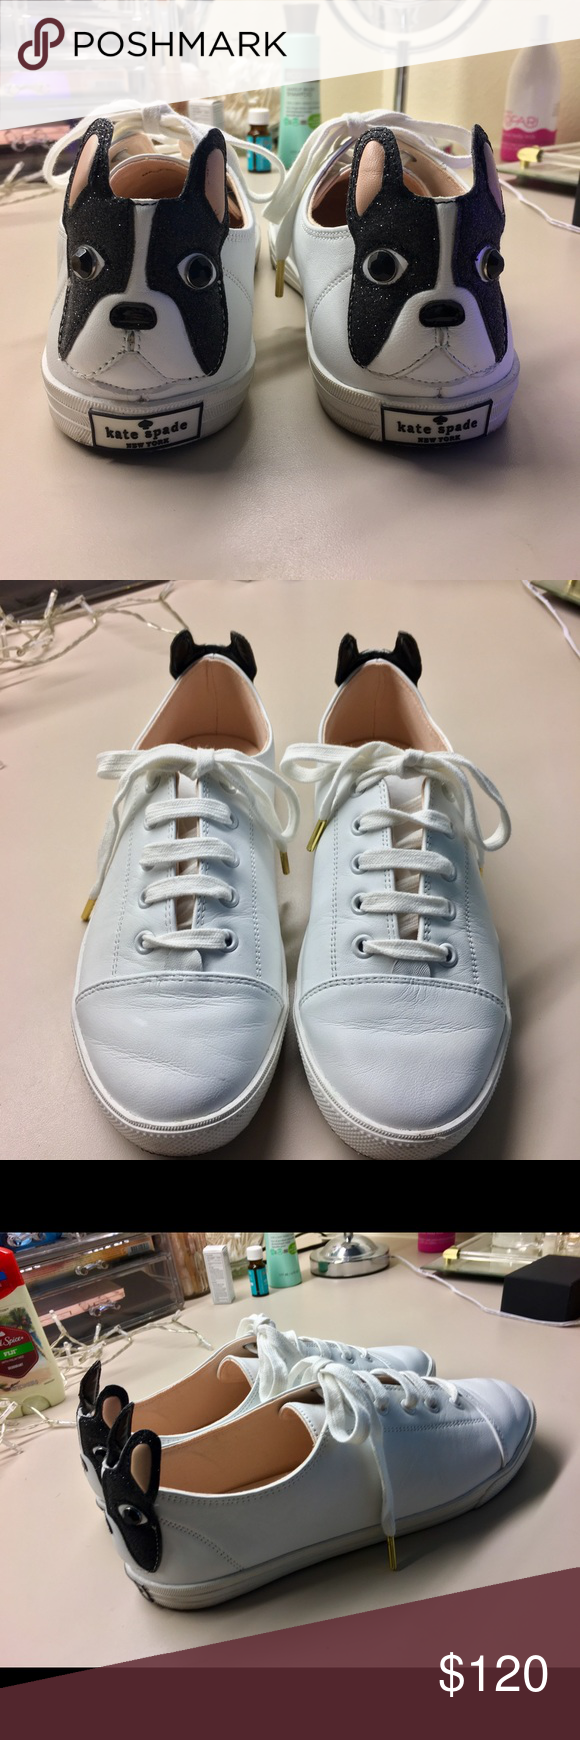 7201e26029d5 Kate Spade New York Lucie White Lace up Shoes Size 9M